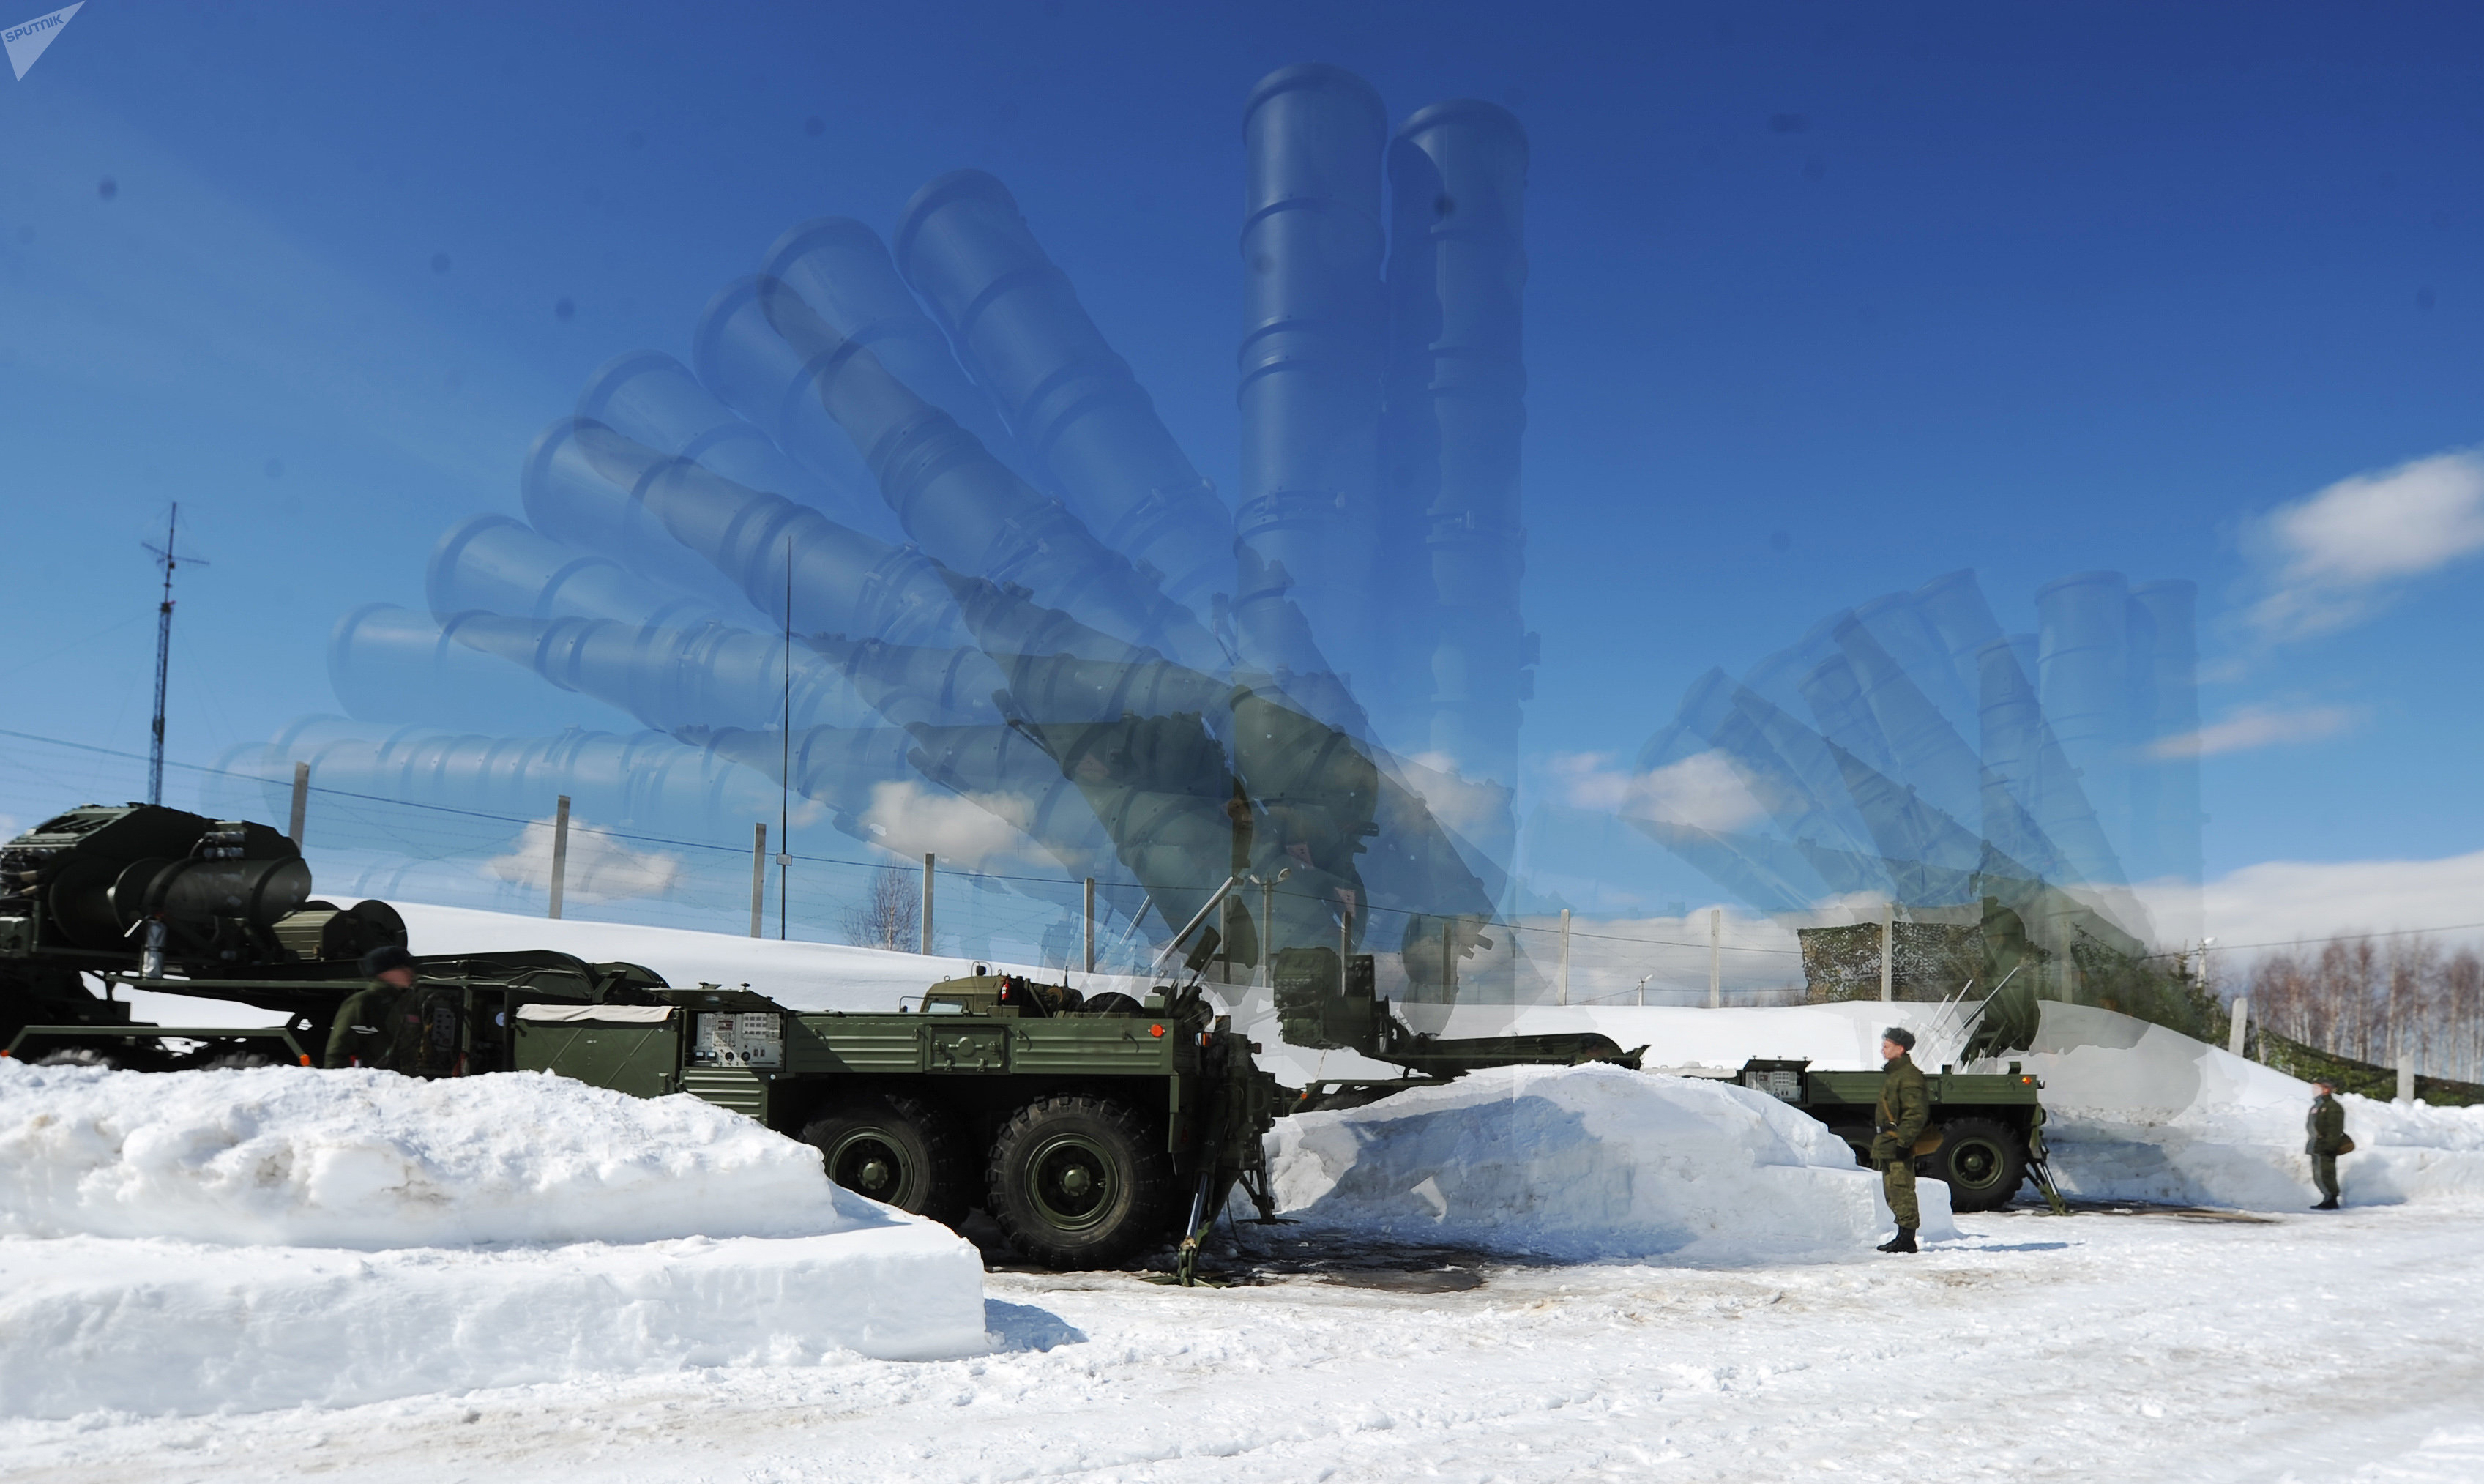 Soldiers of the 4th Brigade Air Defense (NORAD) air and space defense forces (ASD) during the deployment of the Launcher antiaircraft missile system S-400 Triumph at a site in the Moscow region. Multi exposure.